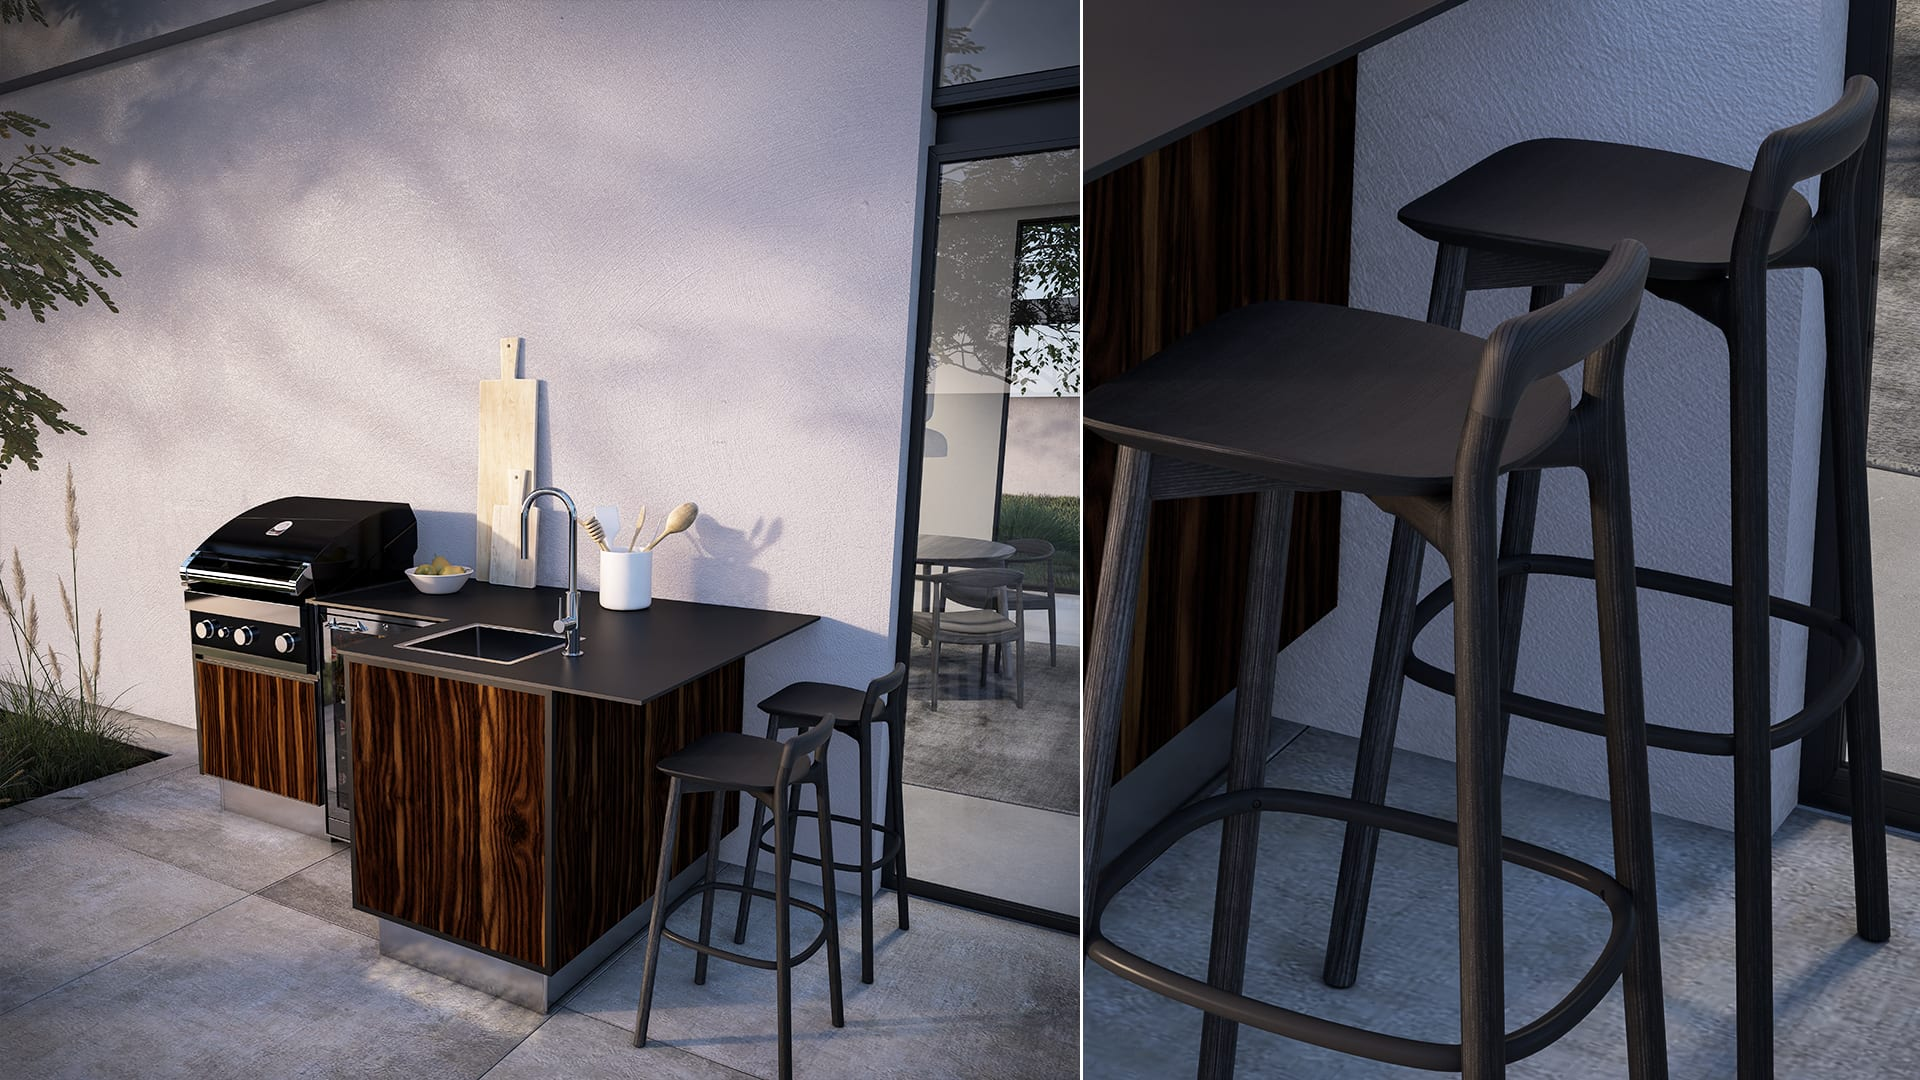 Maayan-Golan_Architectural-Visualization_product-visualization_outdoor-kitchen_alumex-by-formex_grofit-kitchen_06